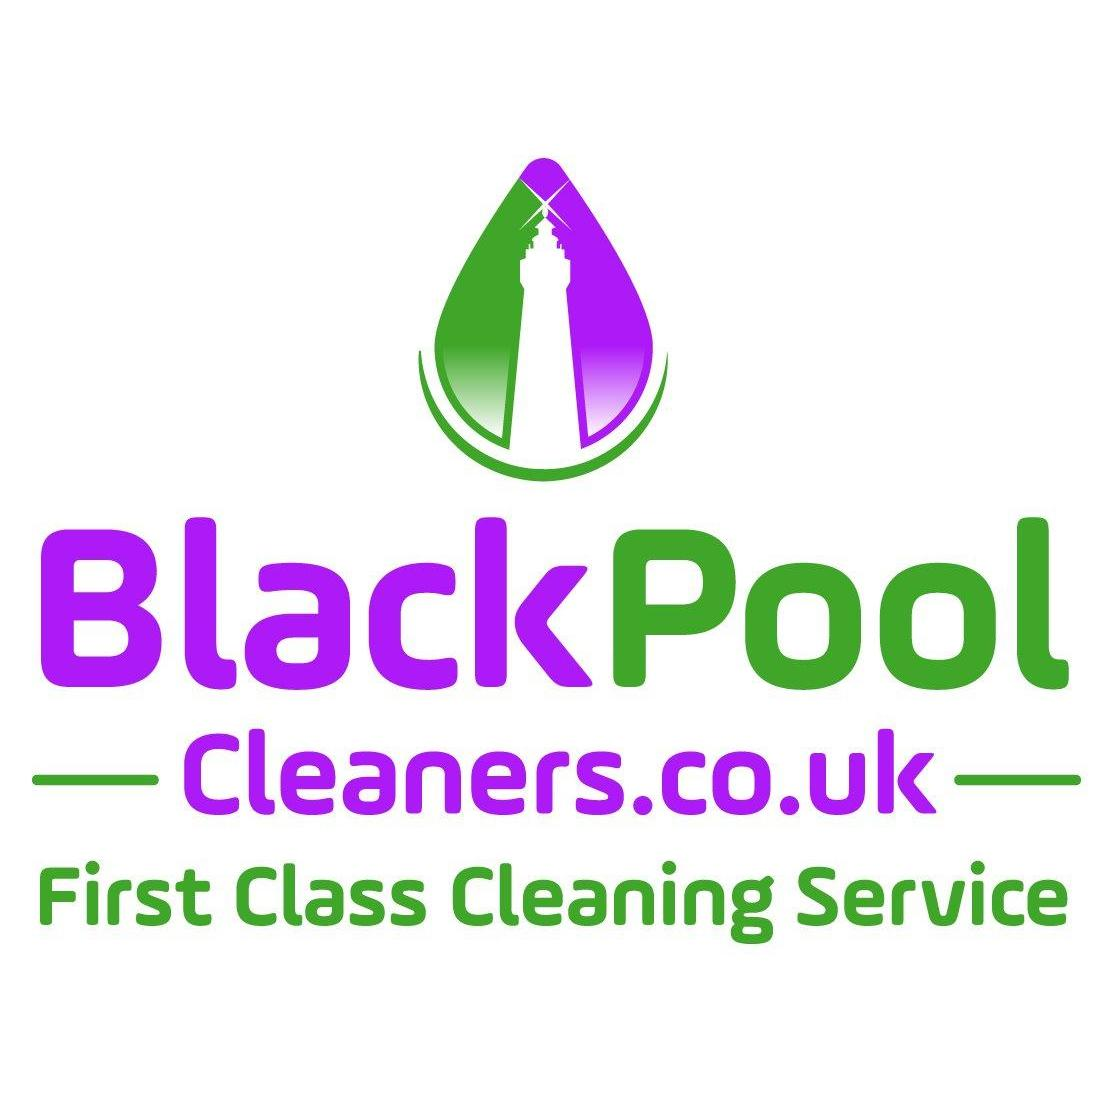 blackpool senior personals Free classified ads for casual dating and everything else find what you are looking for or create your own ad for free  personals categories.